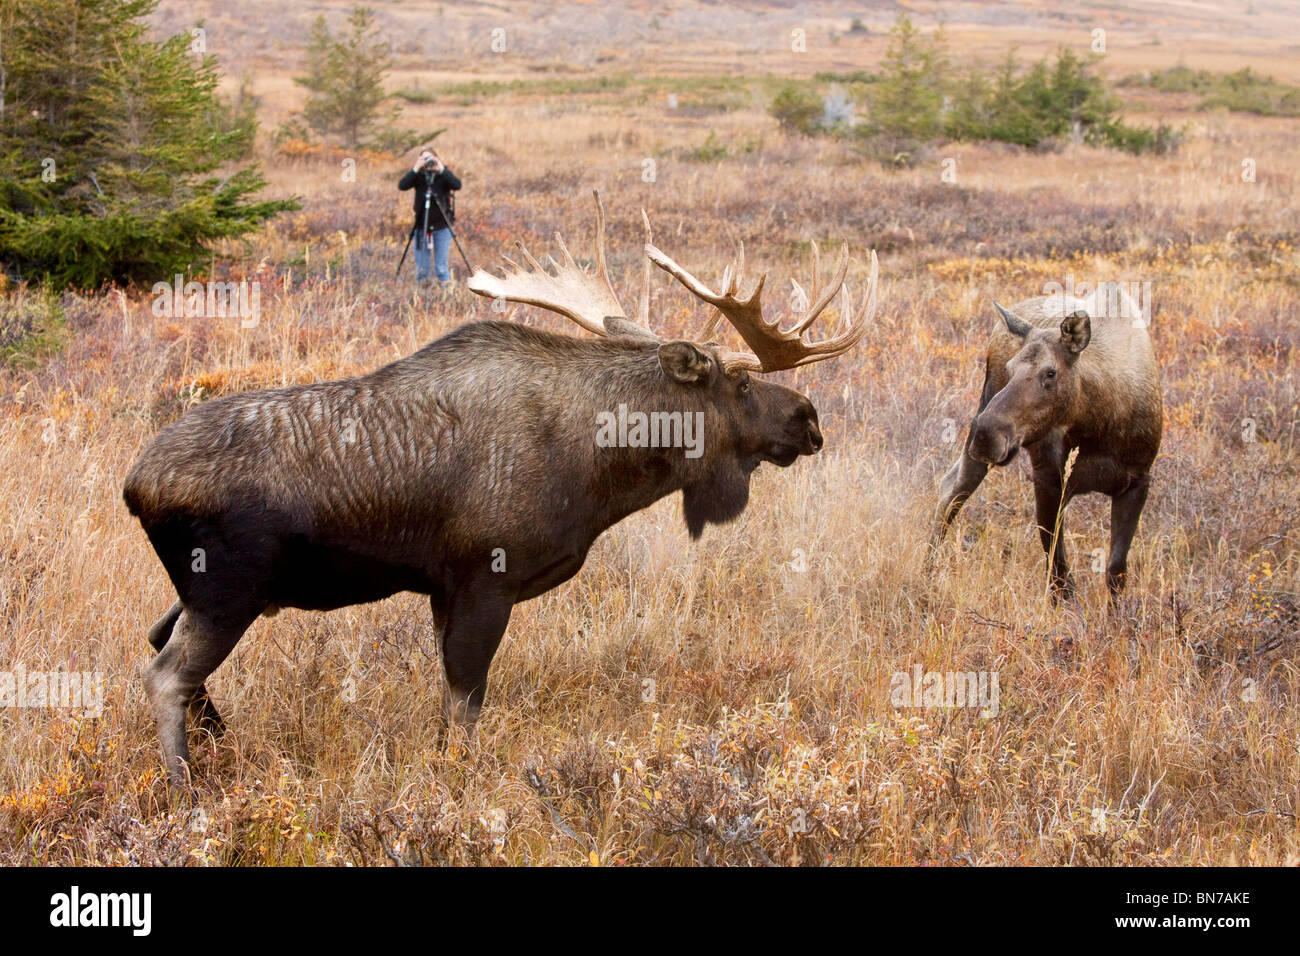 the bull moose 7 day fall moose hunt sentinel mountain safari's has an 85% success rate on bull moose hunts we have one of the highest populations of moose in british columbia.